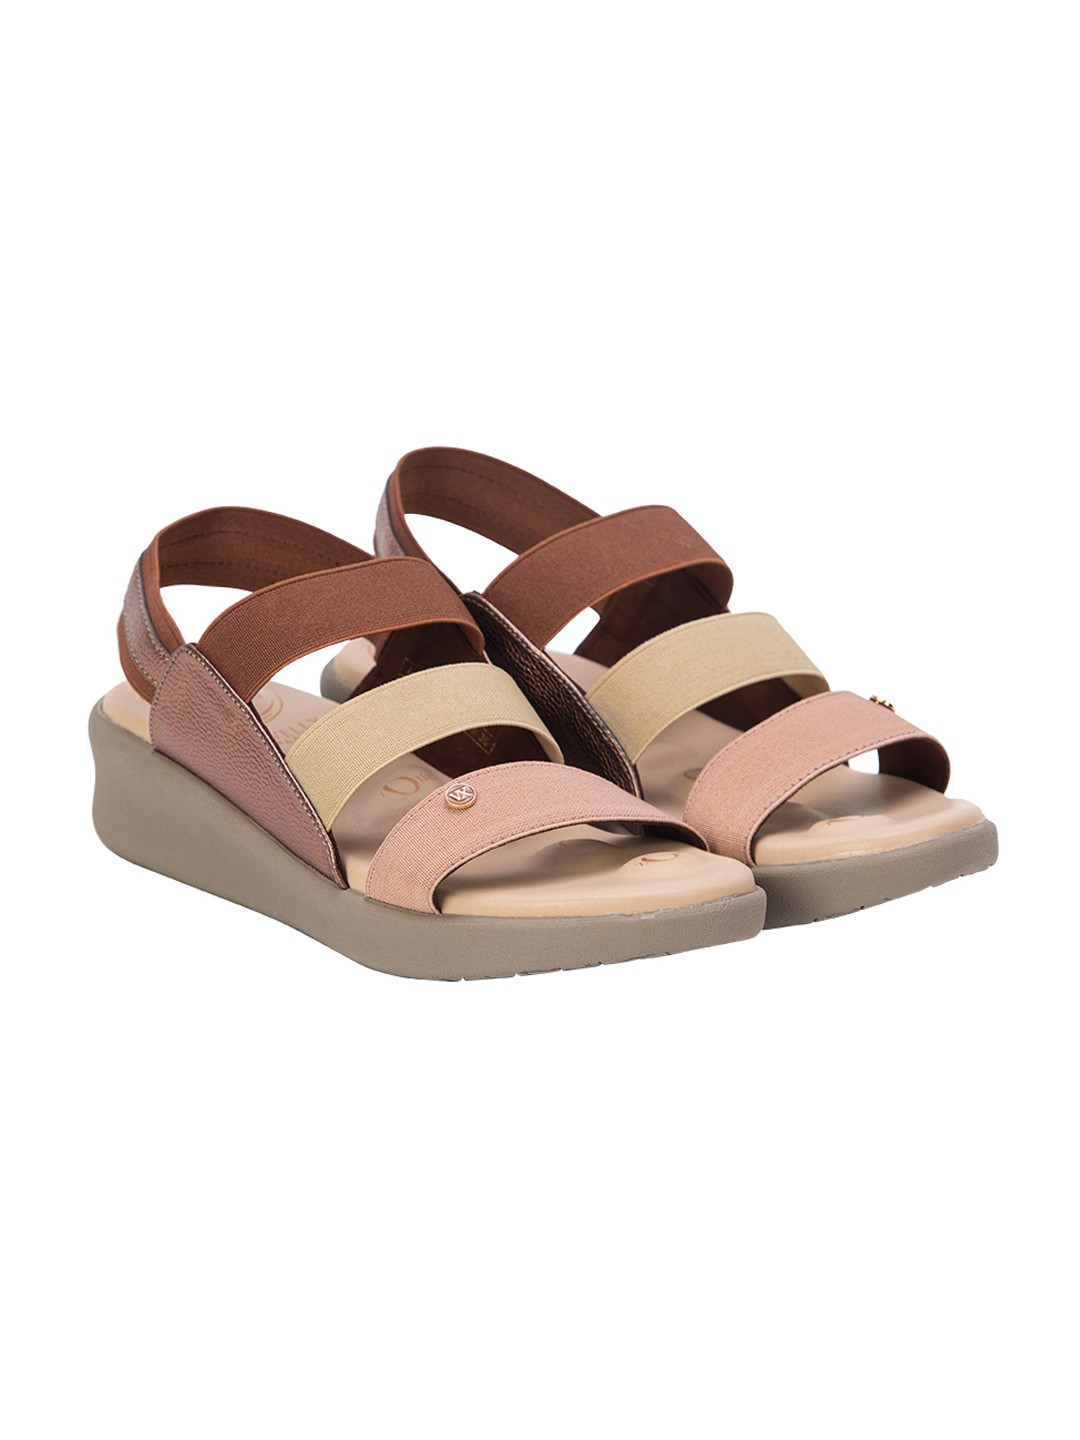 VON WELLX GERMANY COMFORT CAMILA BROWN SANDALS